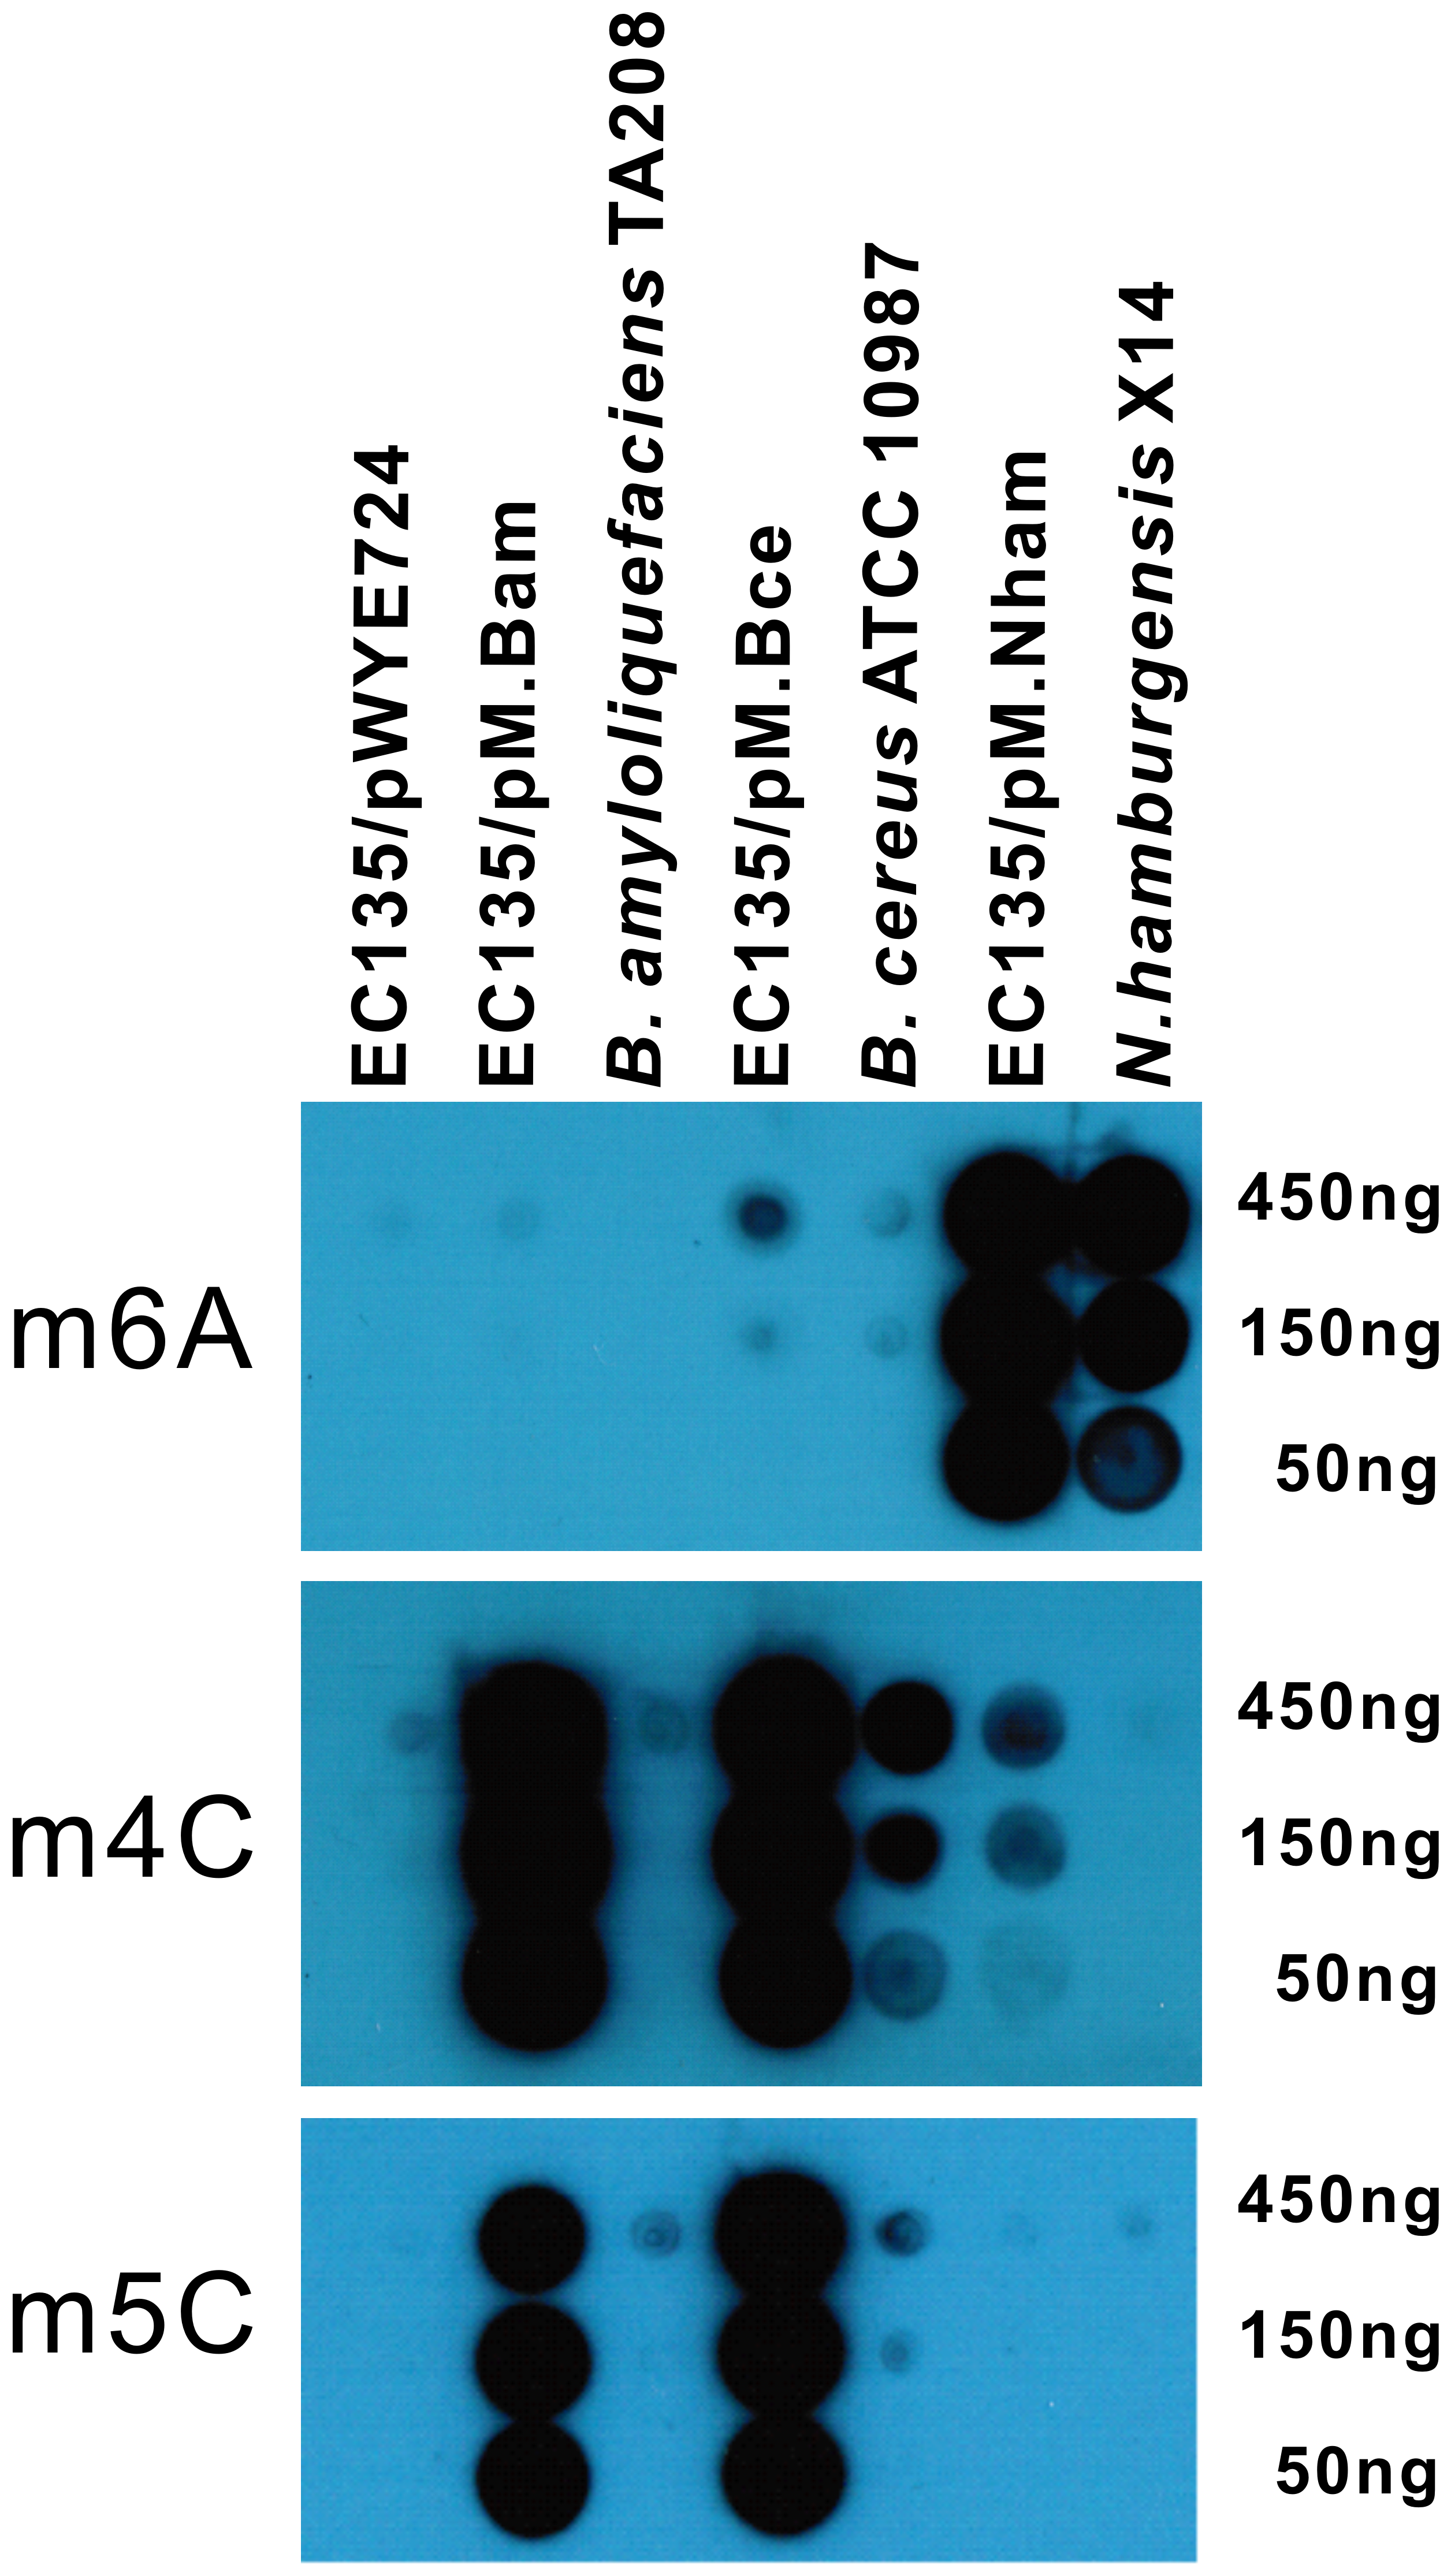 Dot blot assay for co-expression of multiple MTases.